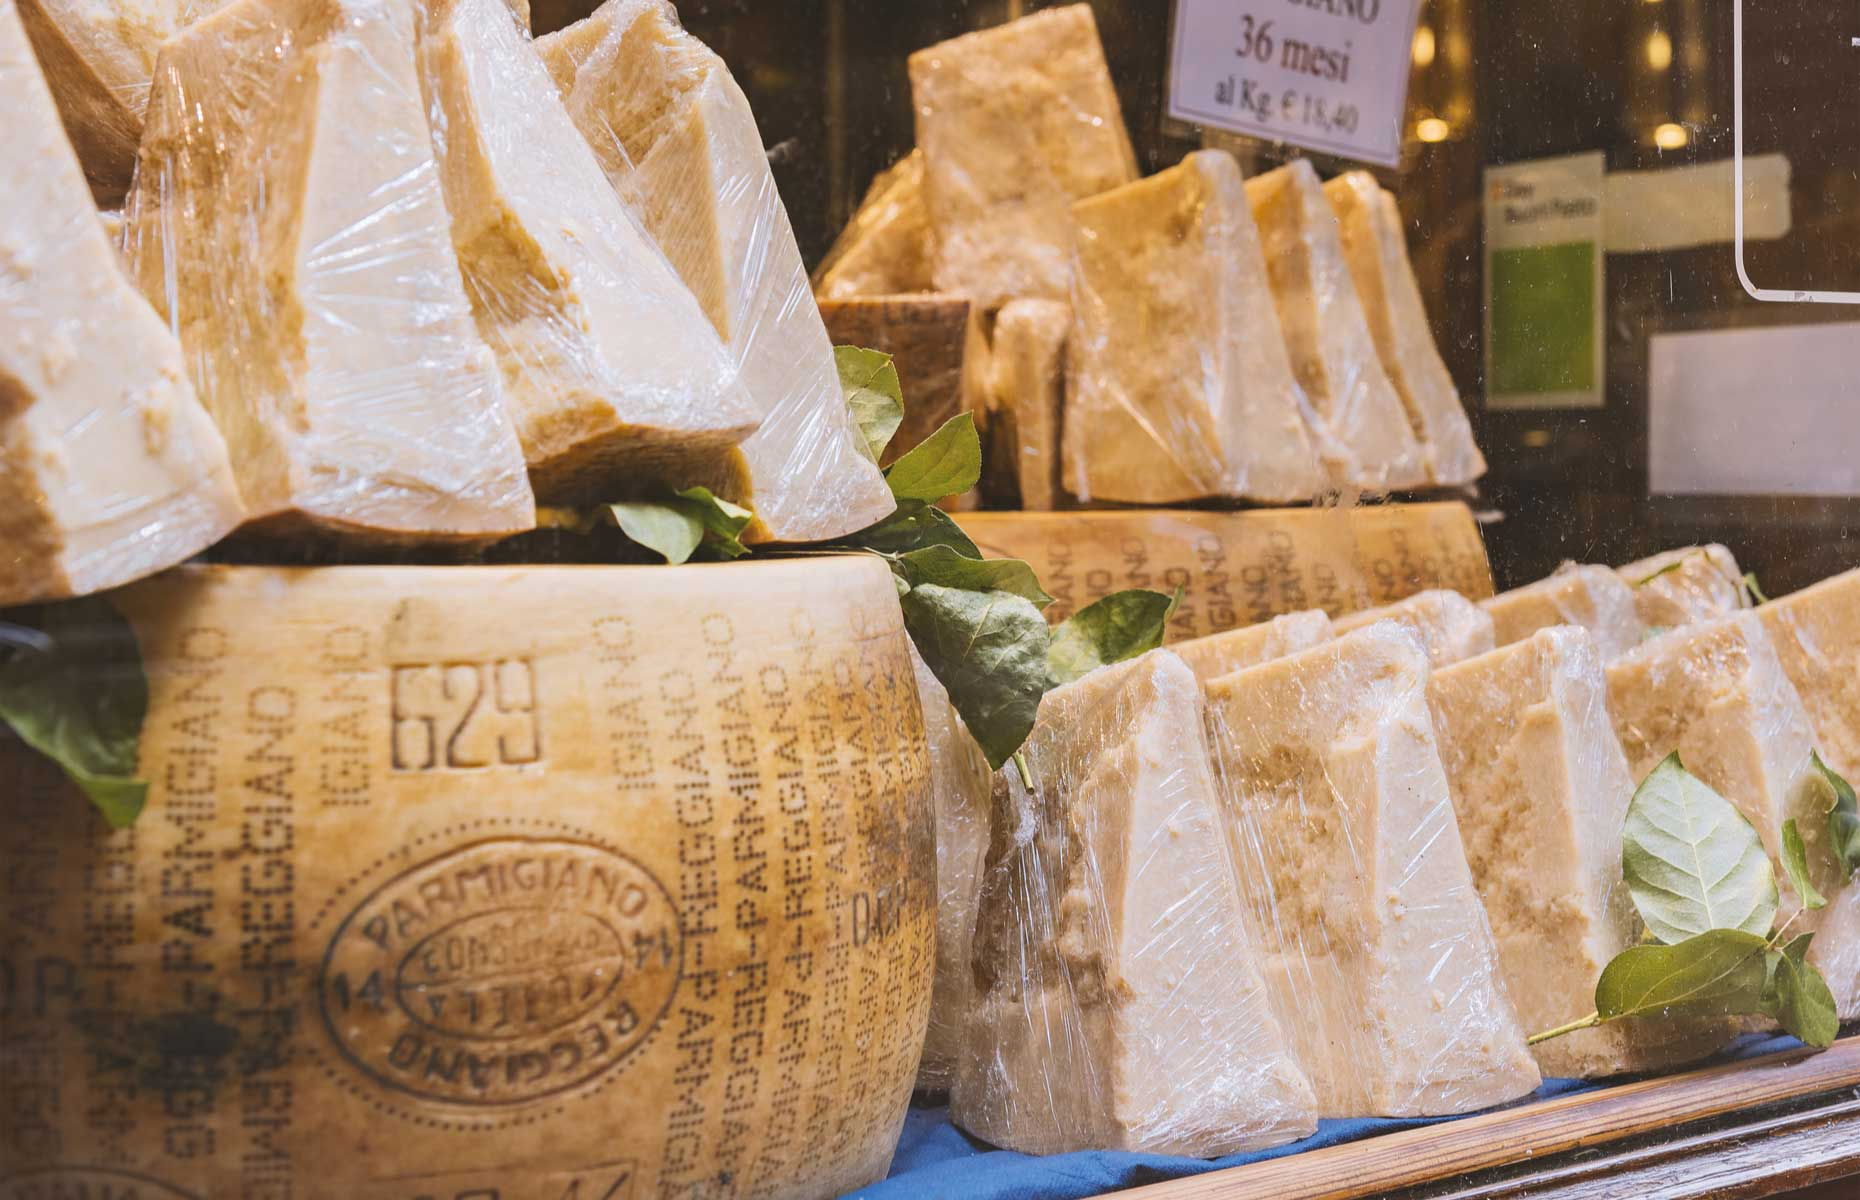 Wrapped Parmesan (Image: Sophie McAulay/Shutterstock)